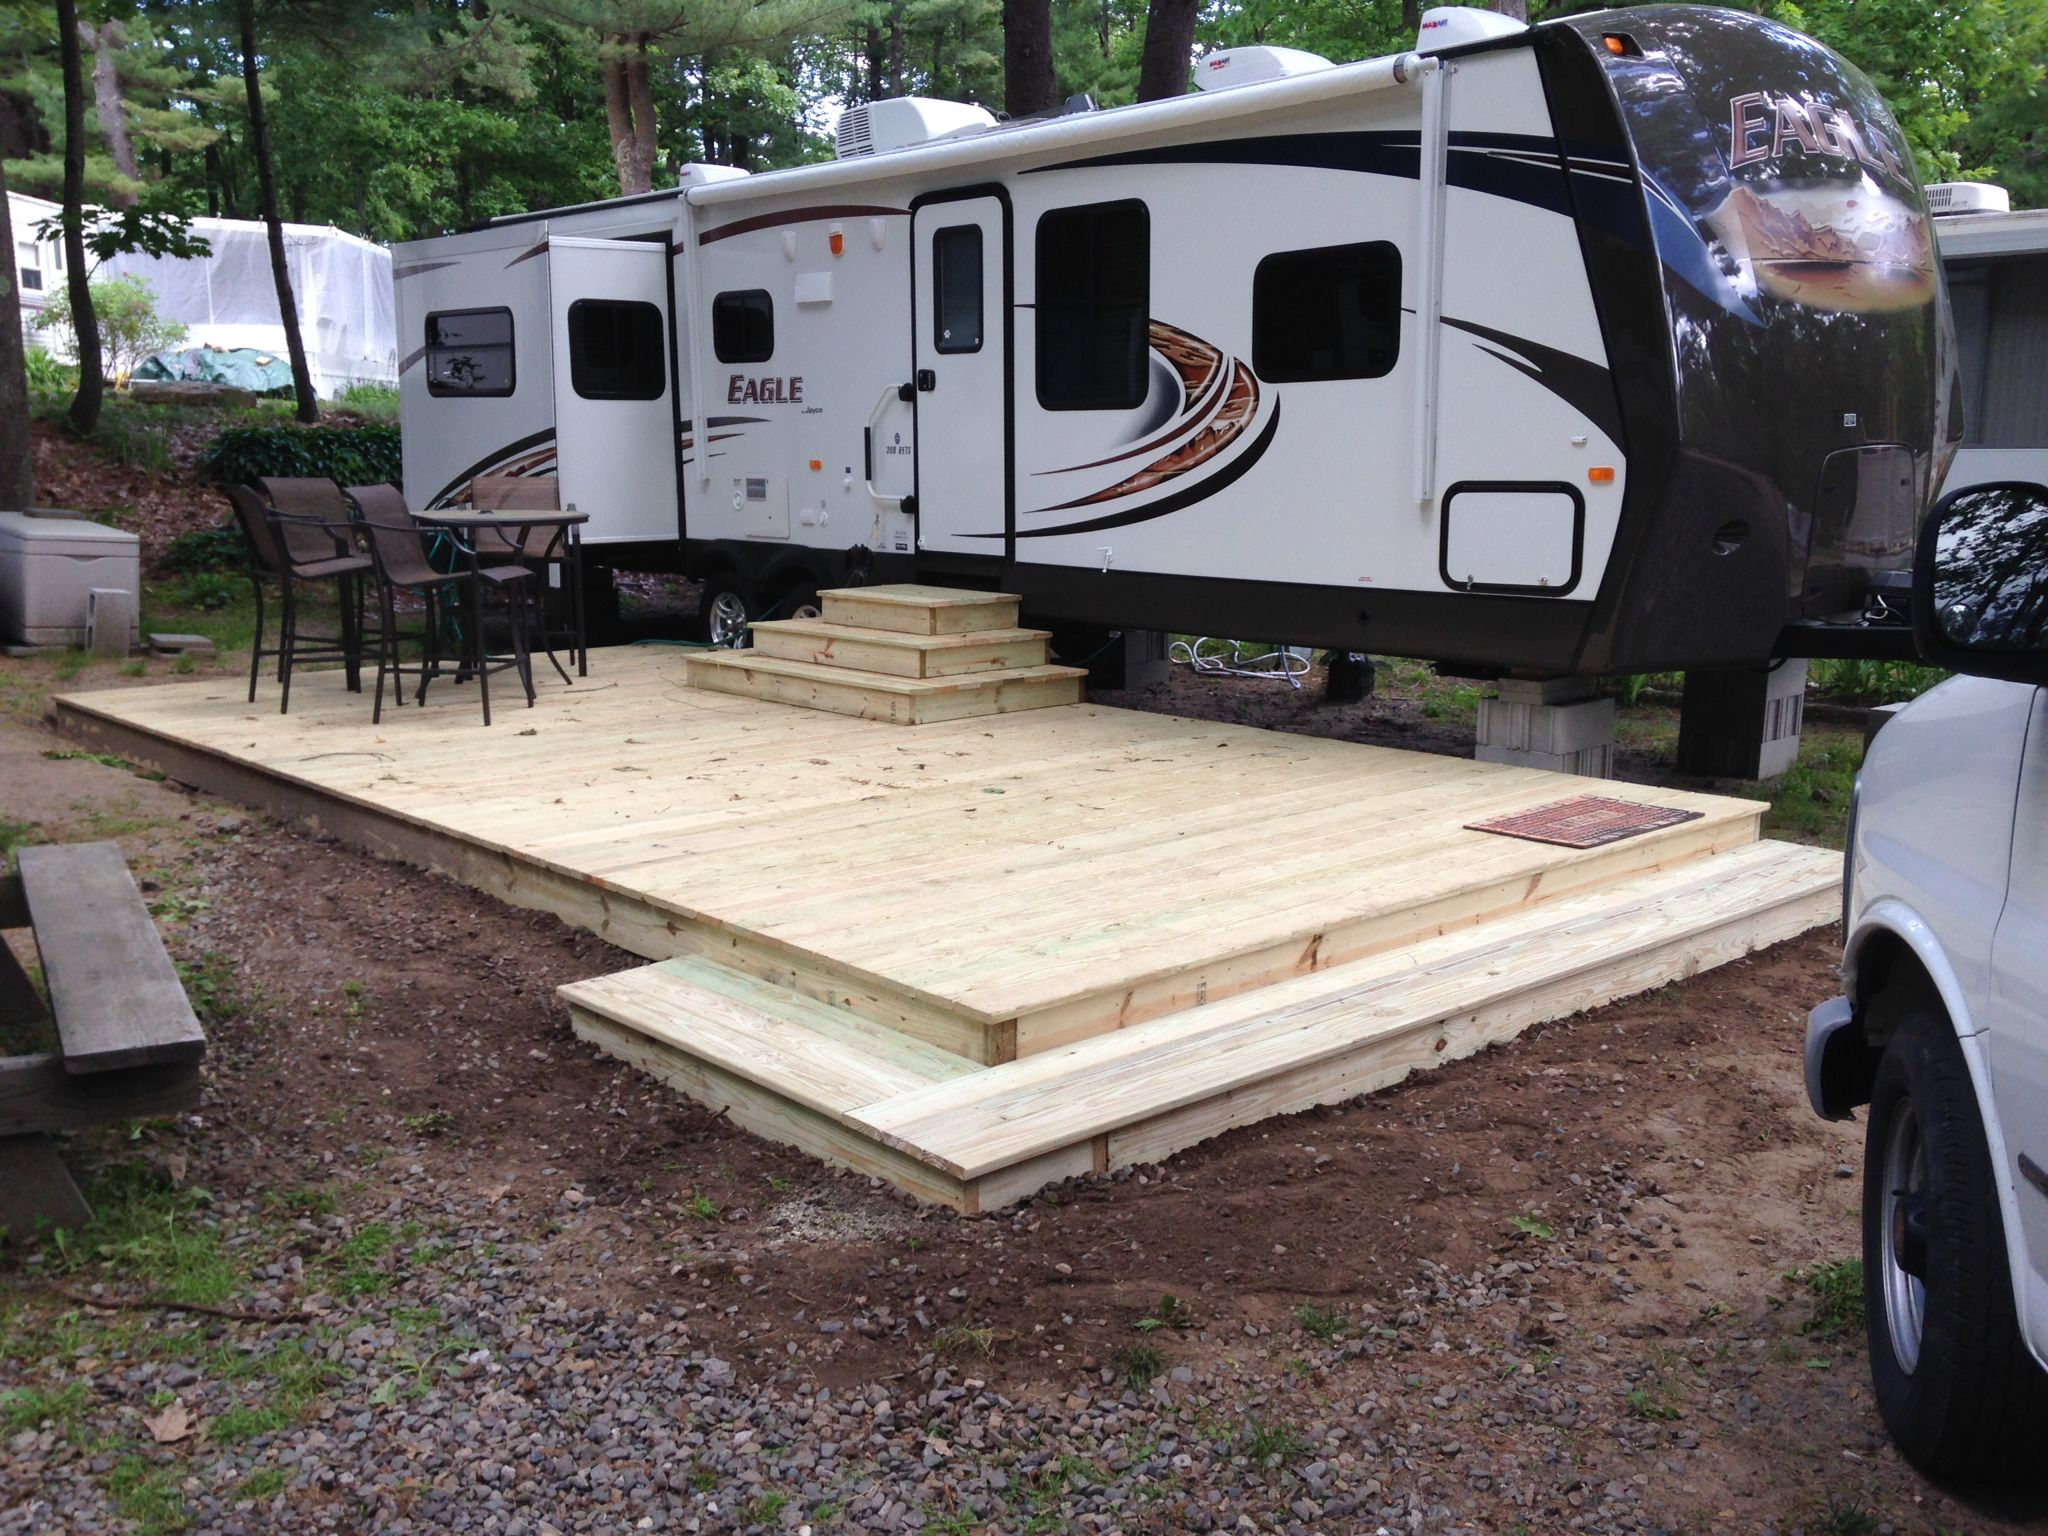 Pick Up Truck Tent Campers >> The 25+ best Camper steps ideas on Pinterest | Camper lights, Van conversion to handicap and ...